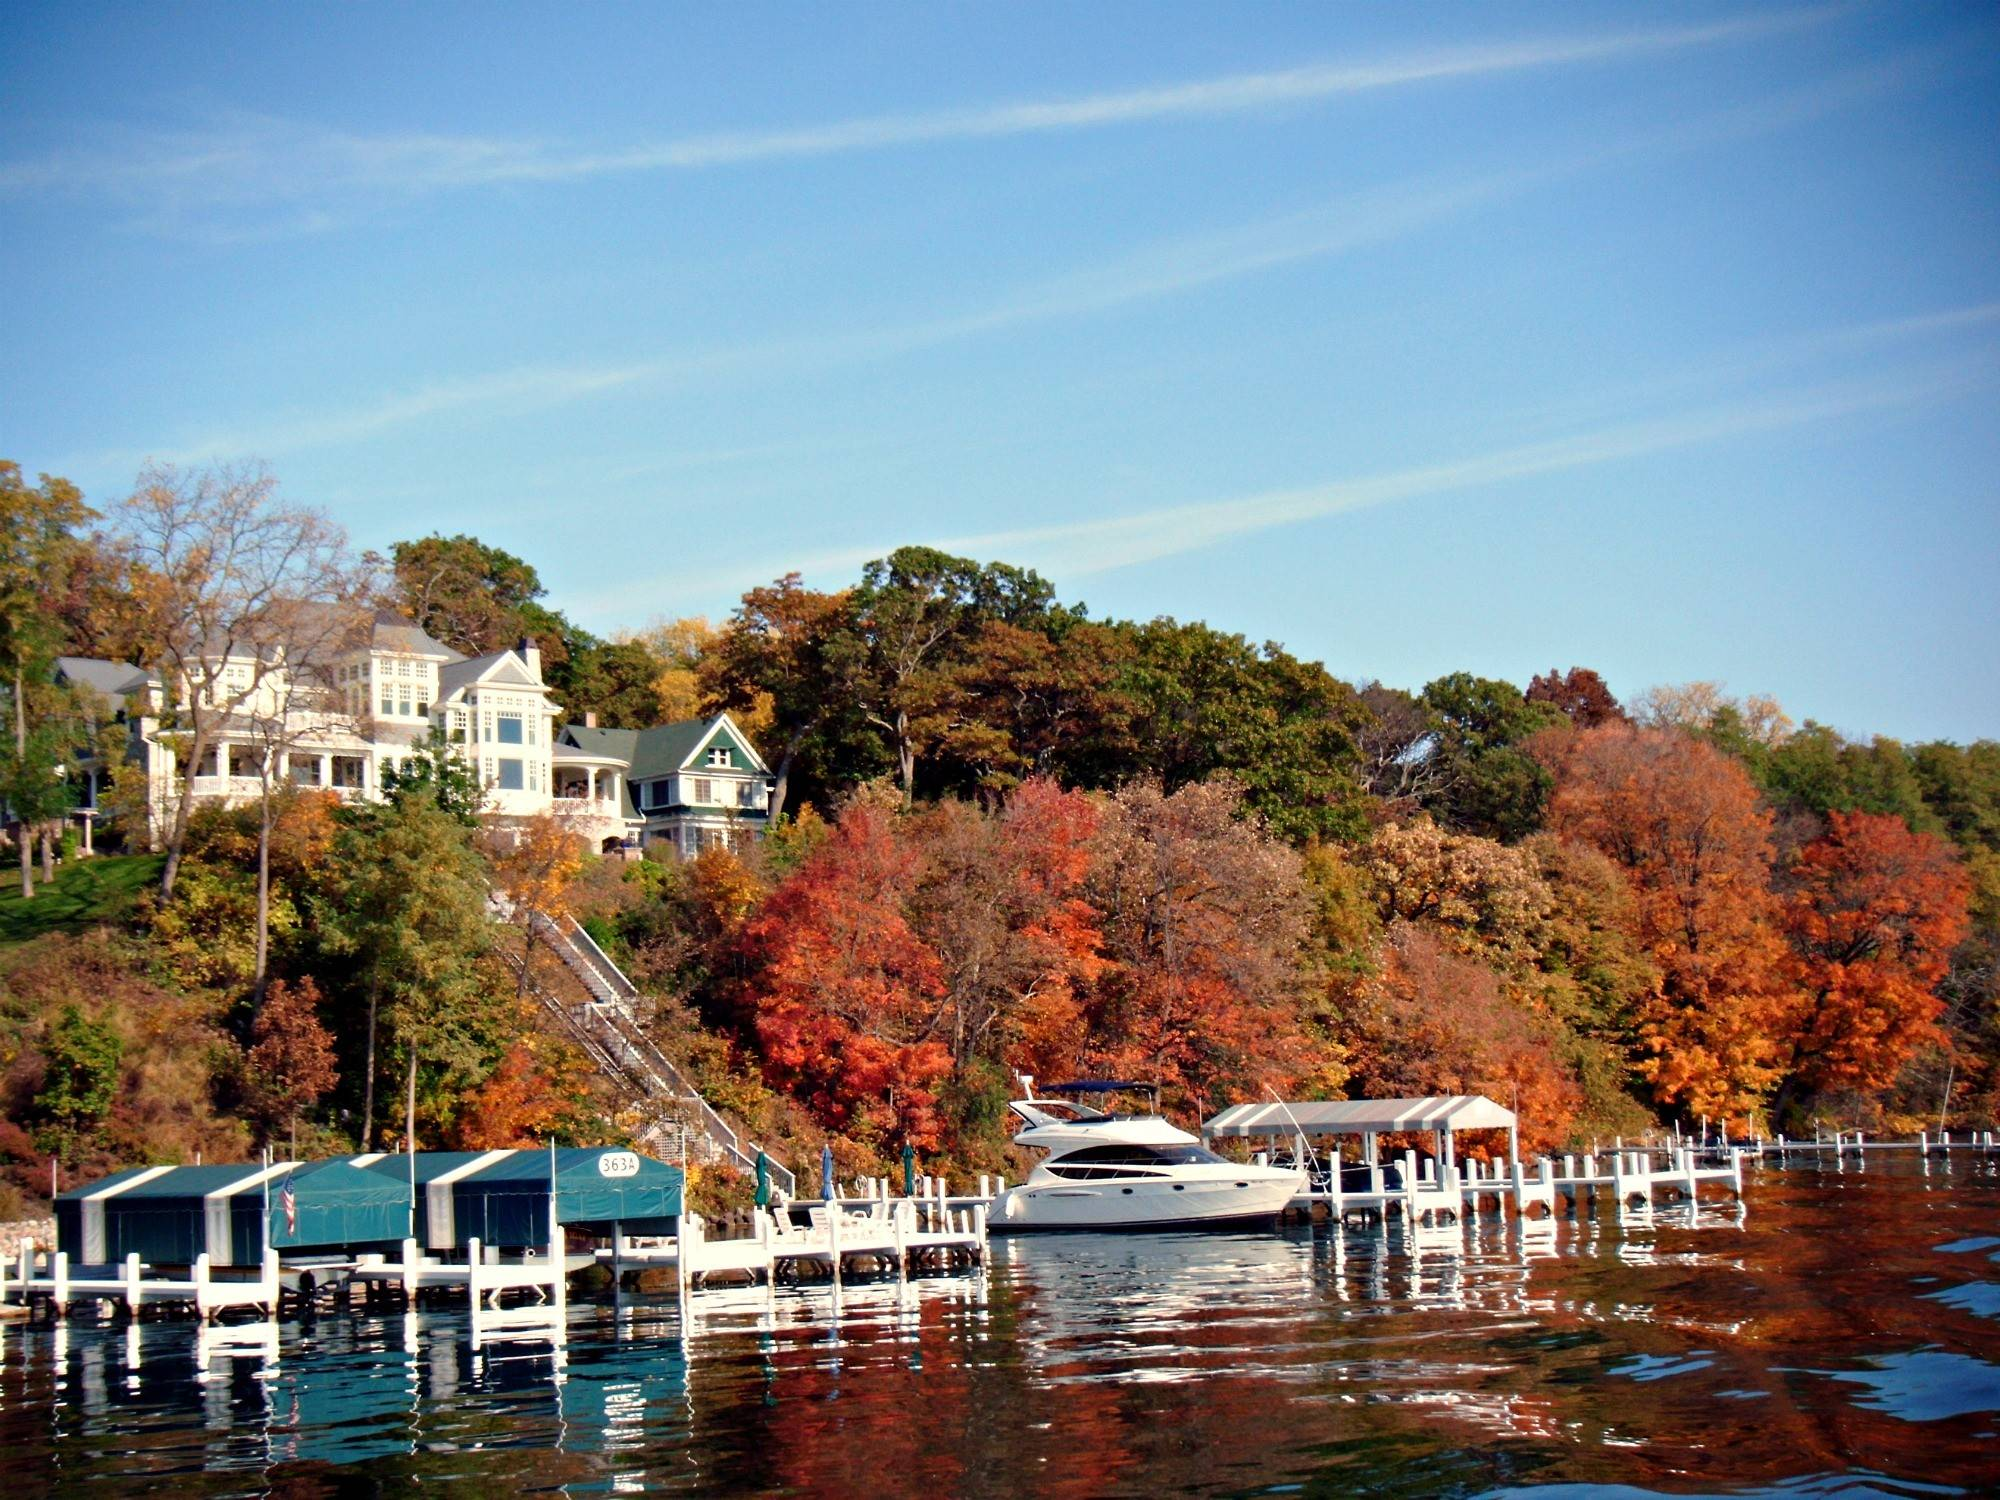 Lake Geneva's area resorts provide options for meetings, retreats and events of all sizes.